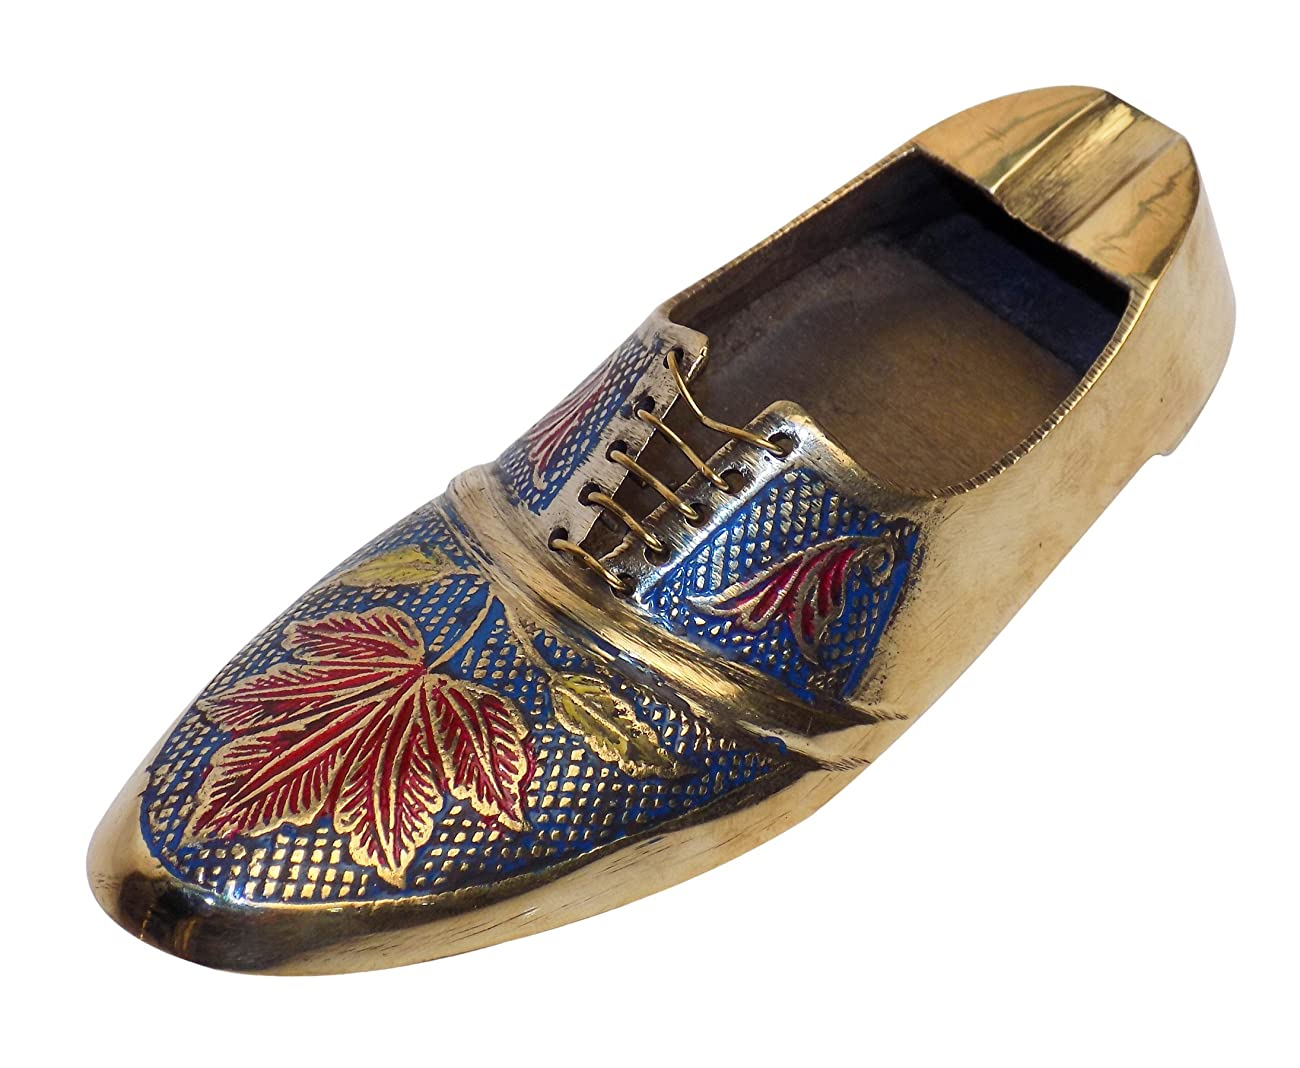 DIWALI OFFER Crafts'man ASHTRAY/PAPER WEIGHT Vintage Style Antique Looking Shoe Shape Paper weight 0